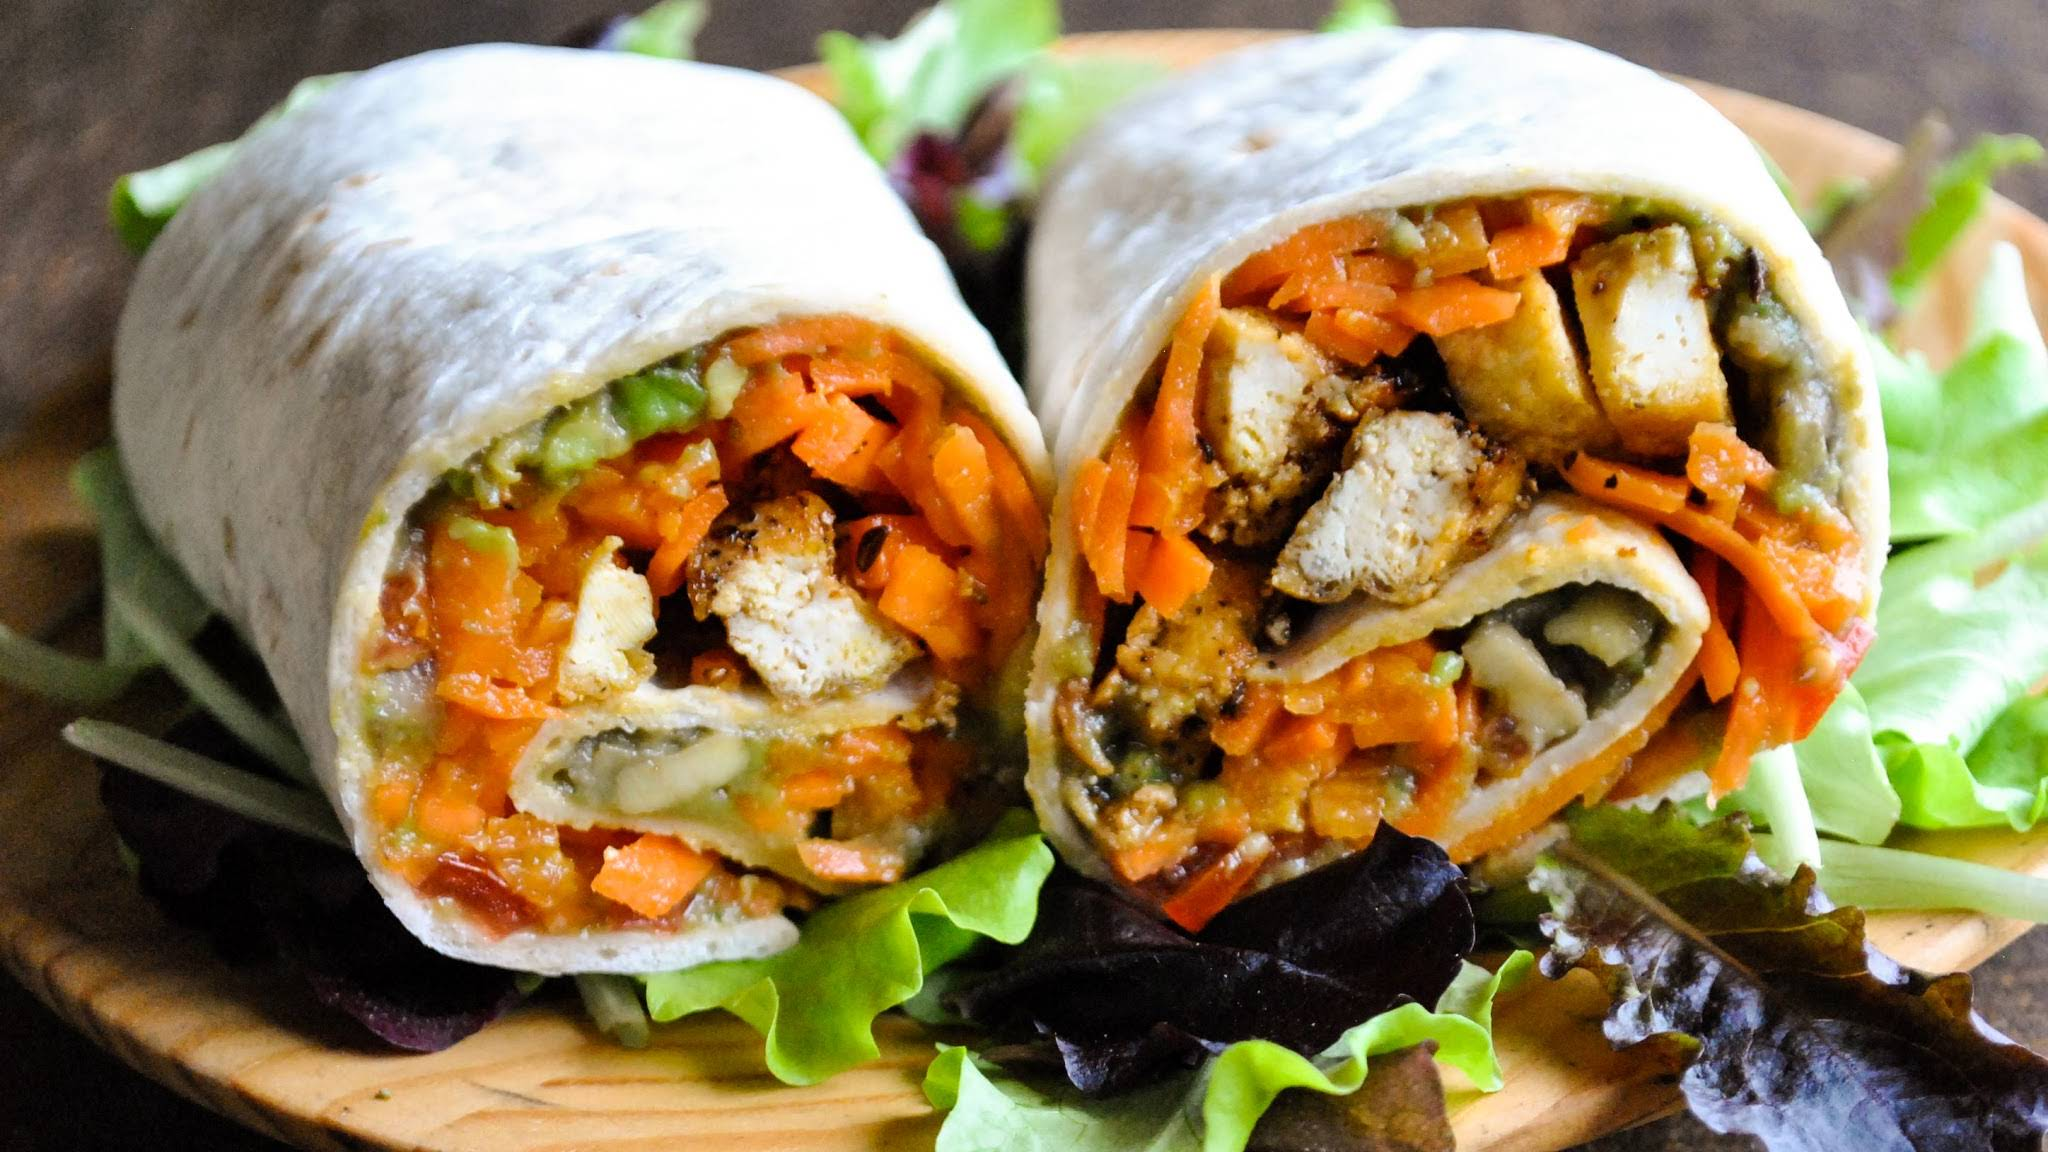 Vegan Wraps With Carrot Noodles Pepper Tofu And Guacamole